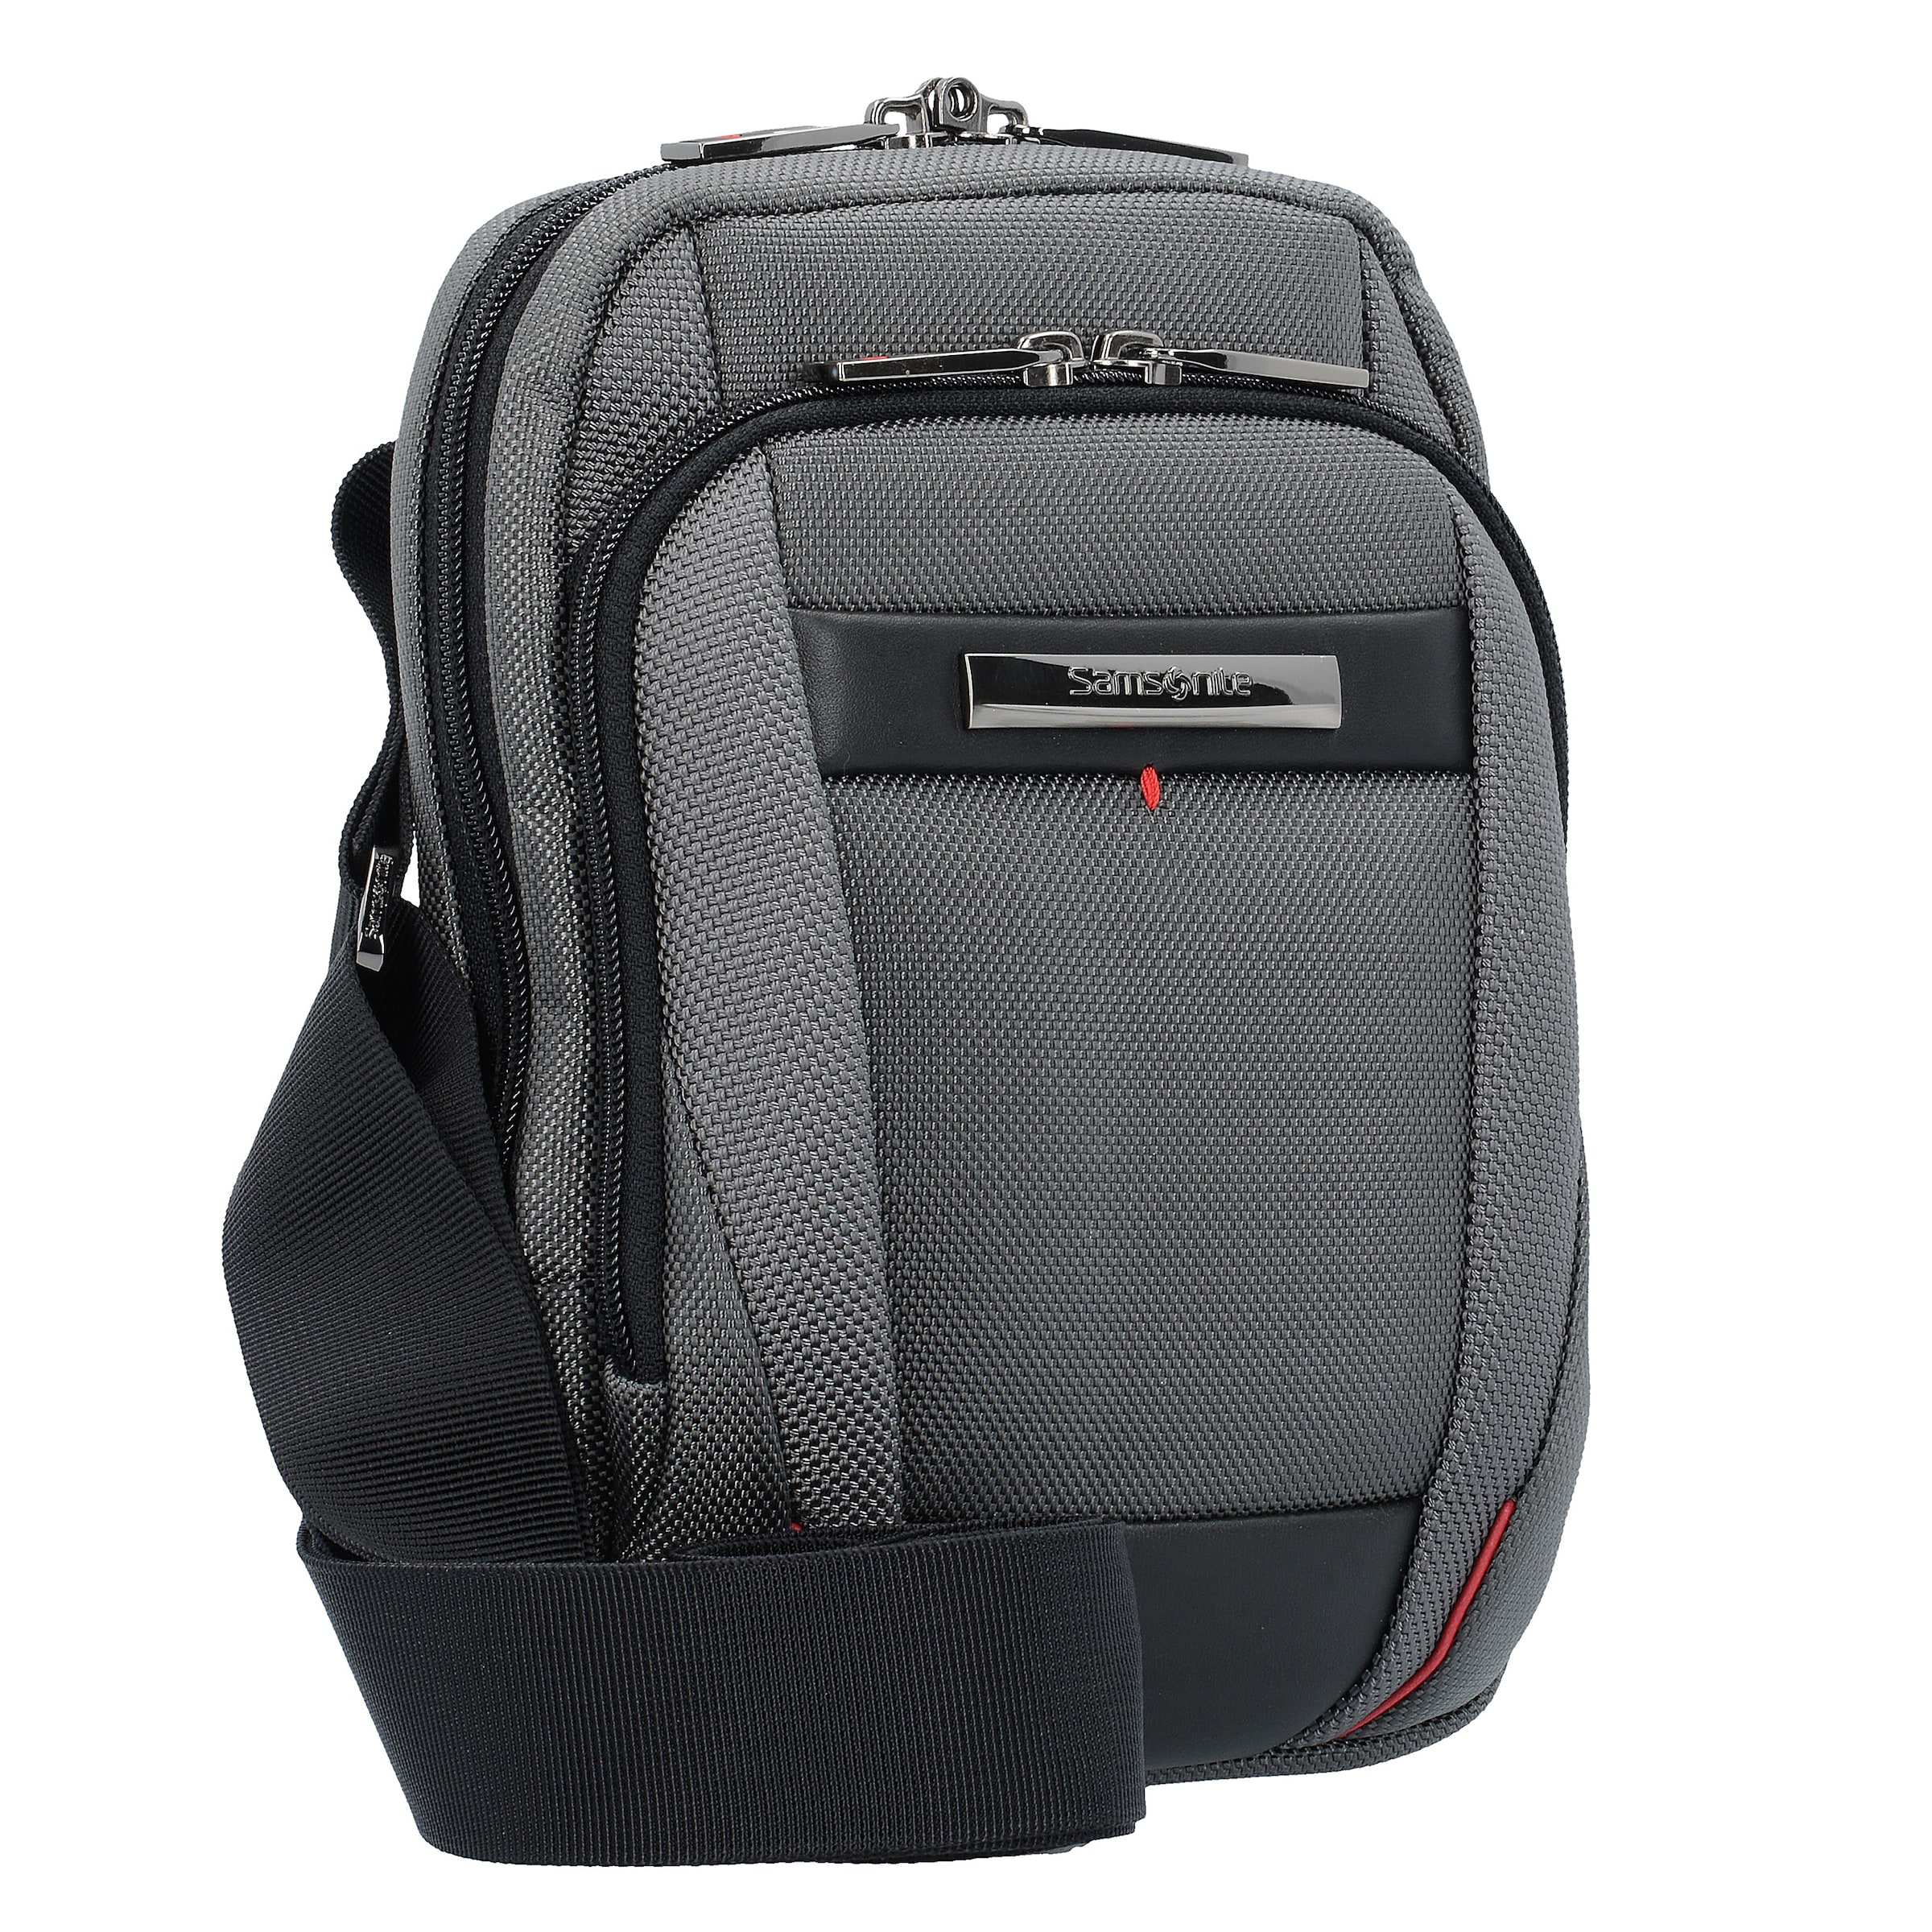 Umhängetasche Umhängetasche Umhängetasche Samsonite In Samsonite In Samsonite Grau Grau Samsonite Umhängetasche In Grau 9E2IDWH